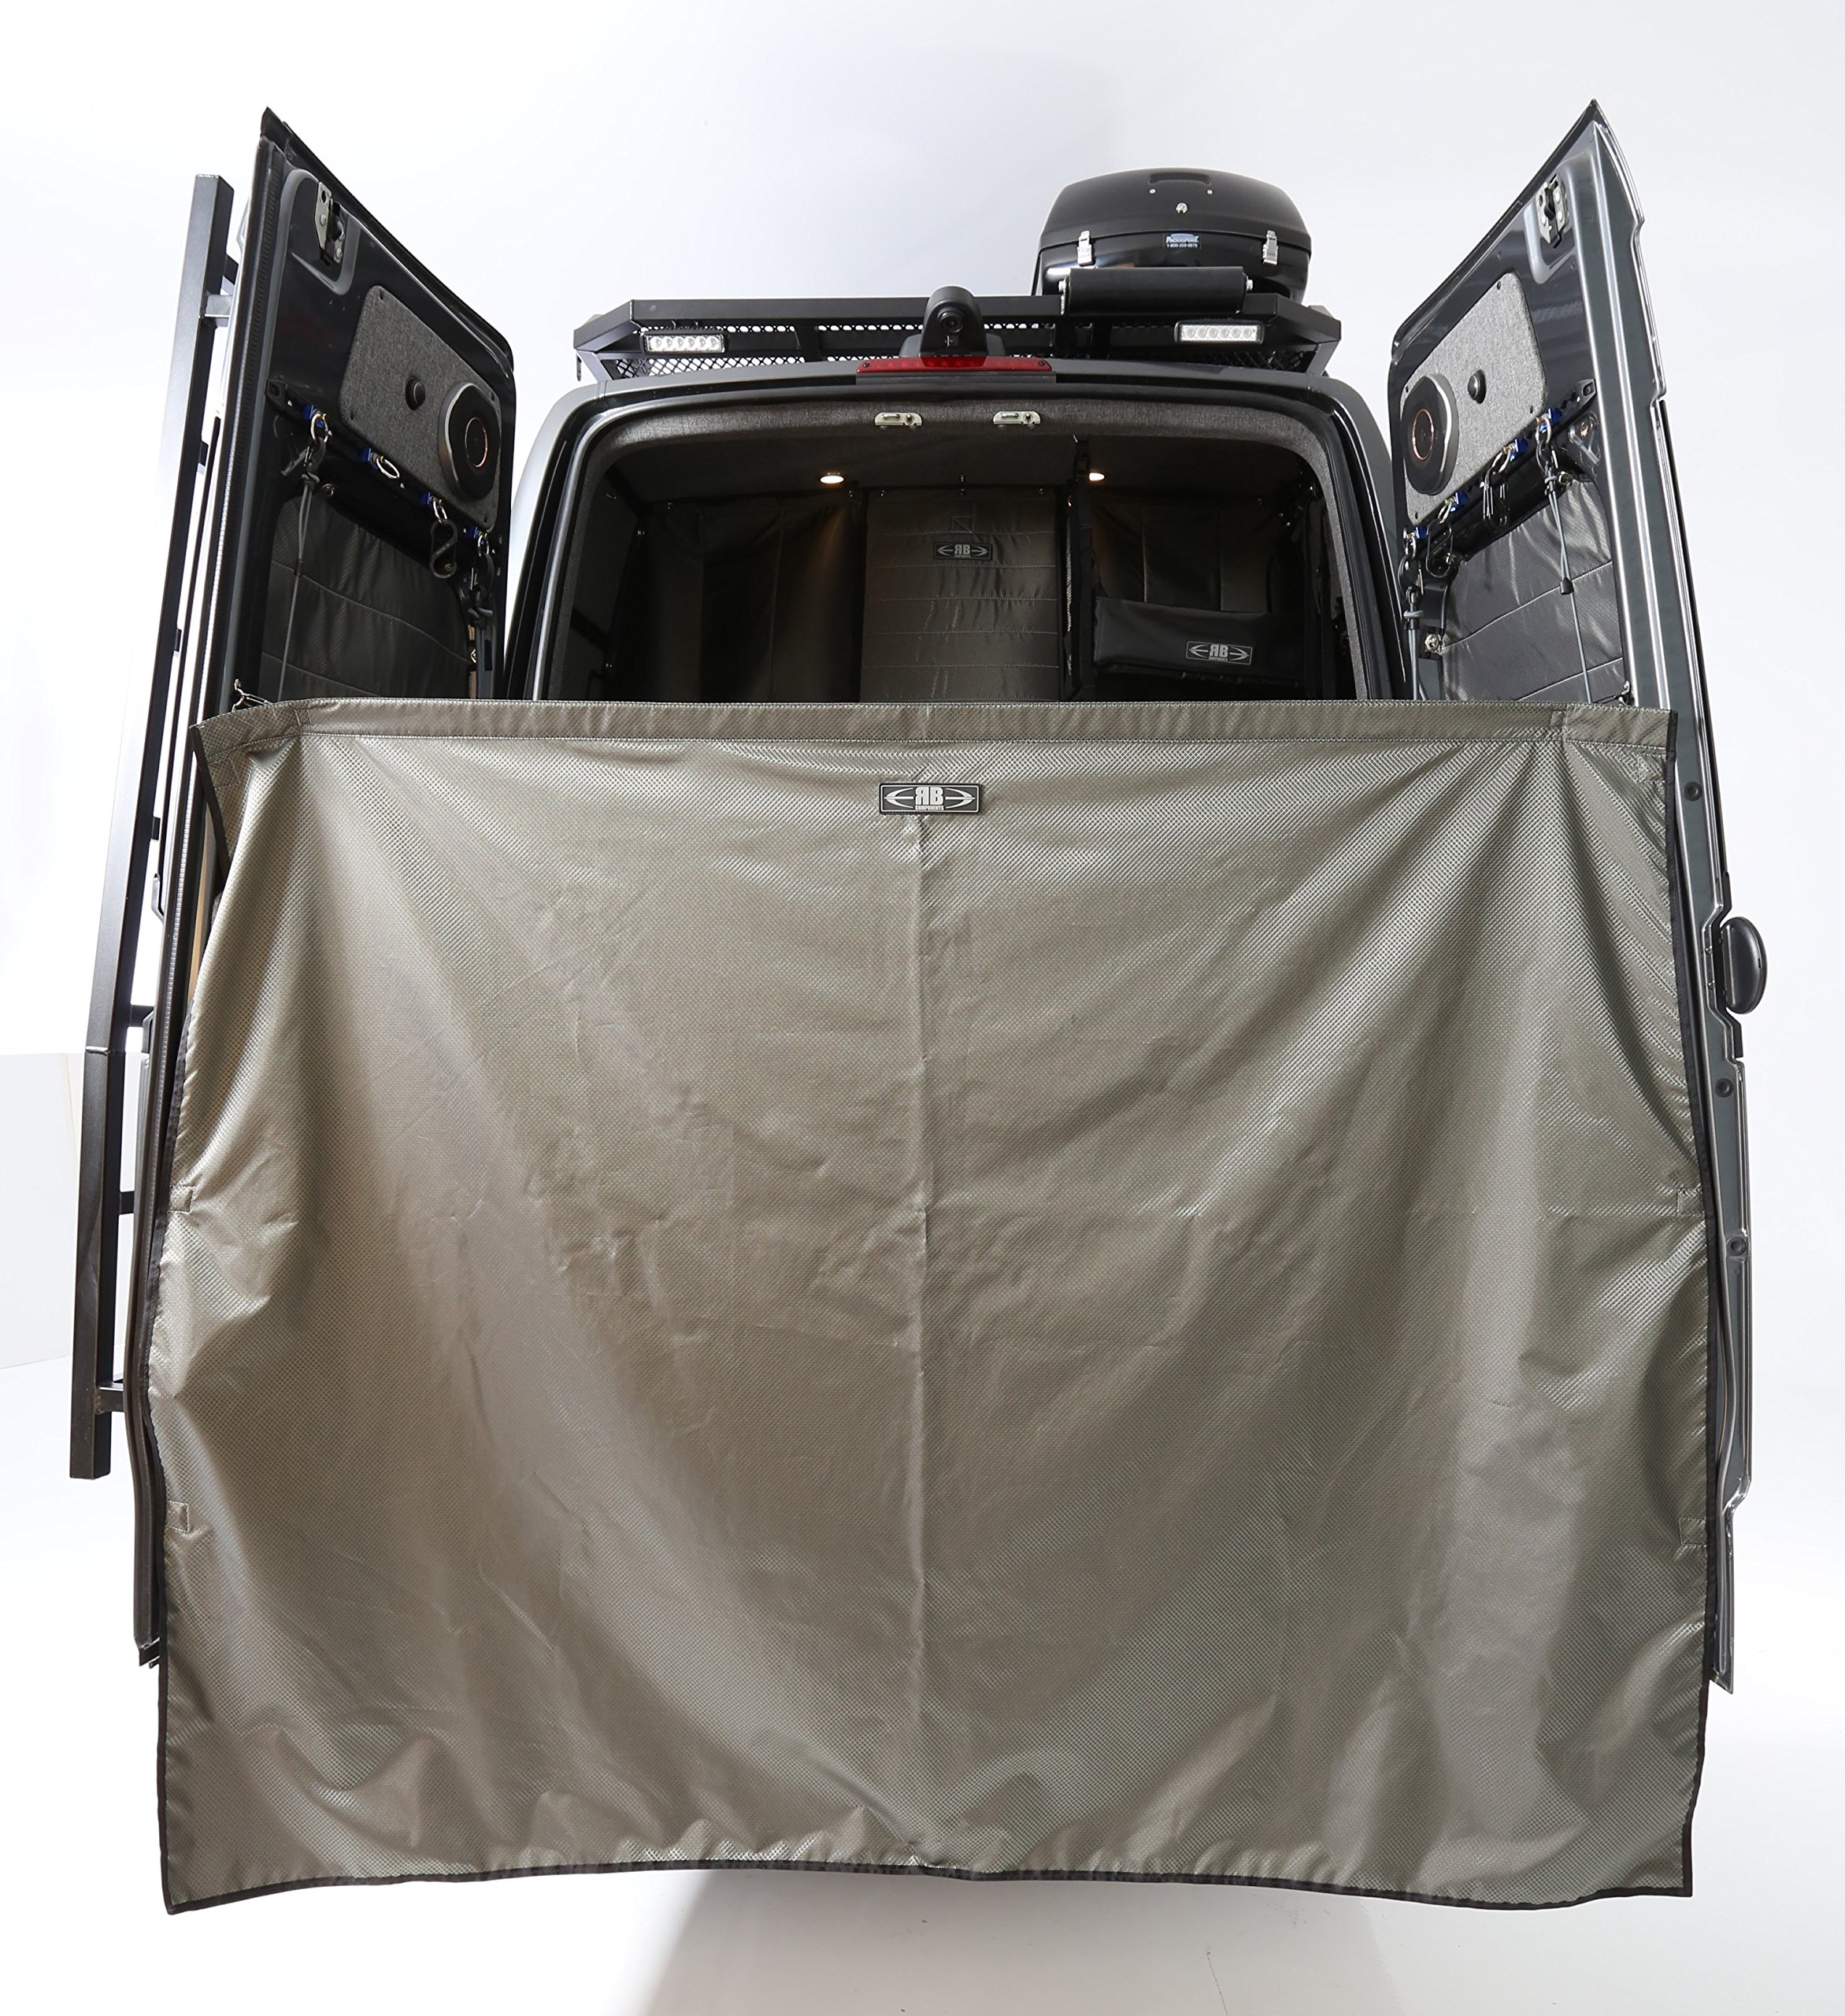 Door Privacy Curtain Cheap Privacy Curtain For Car Find Privacy Curtain For Car Deals